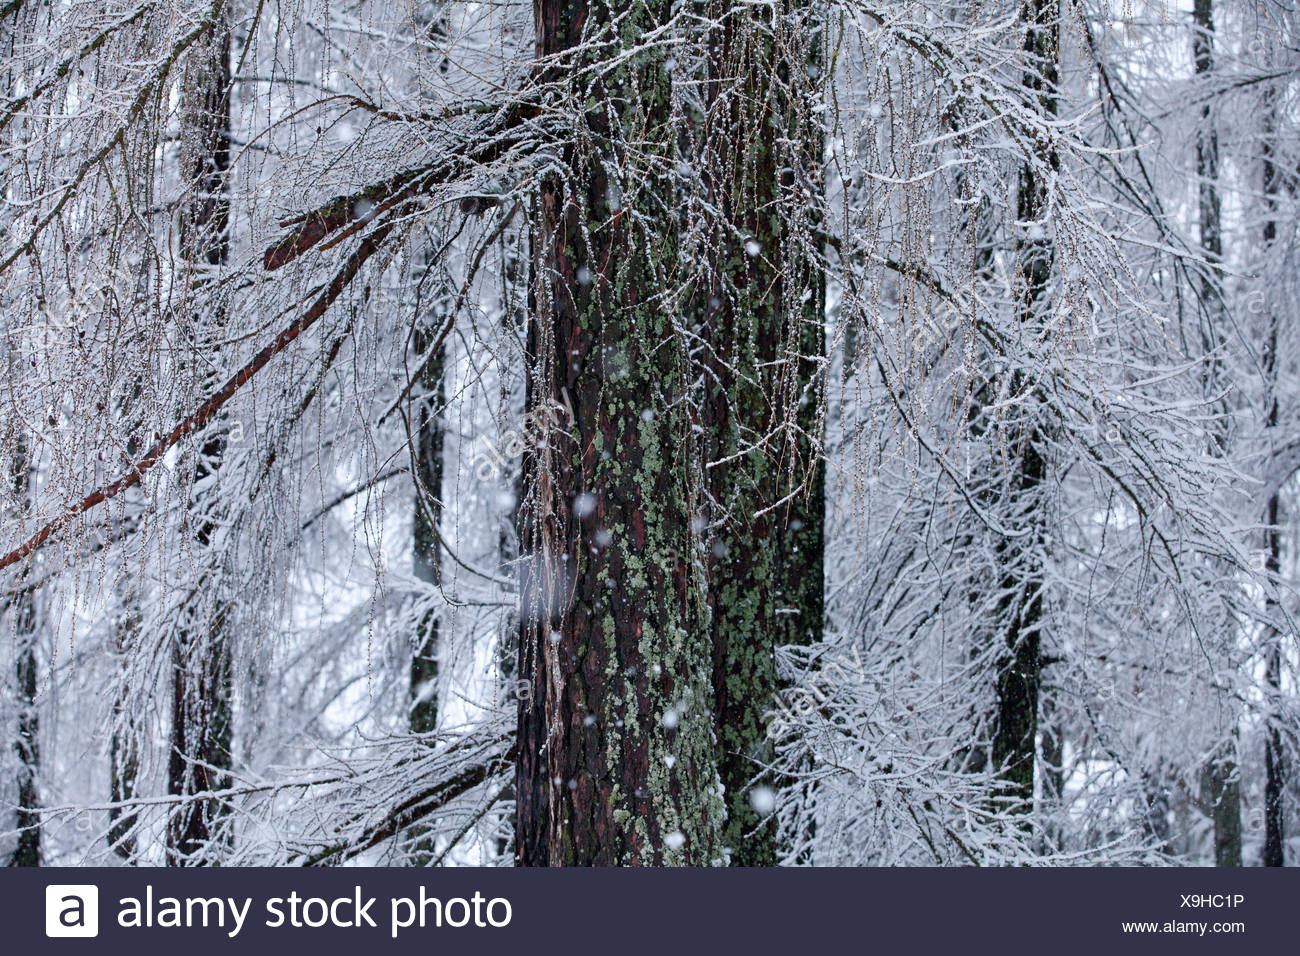 Larch stems with lichens - Stock Image